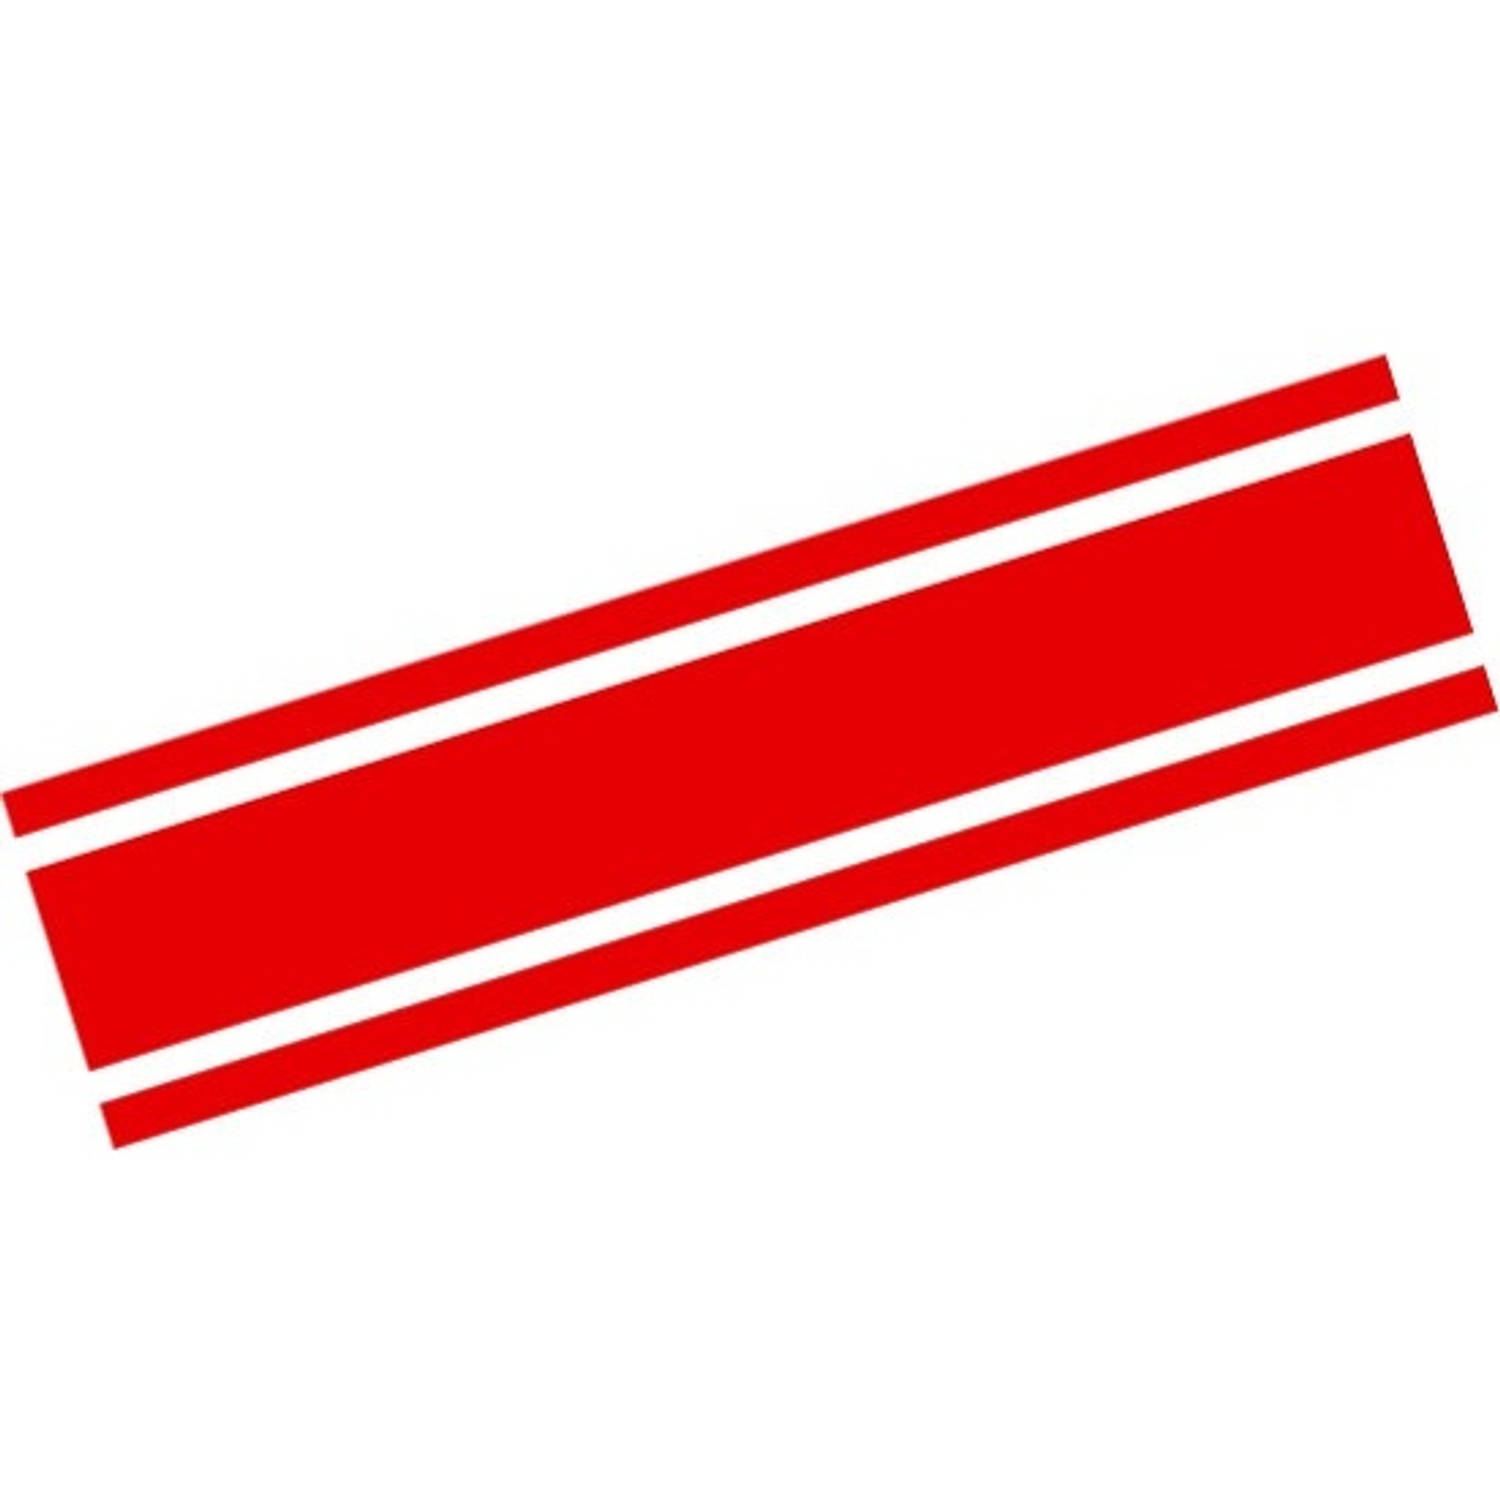 AutoStyle sticker RacingStripe150 20+90+20 mm 5 meter rood